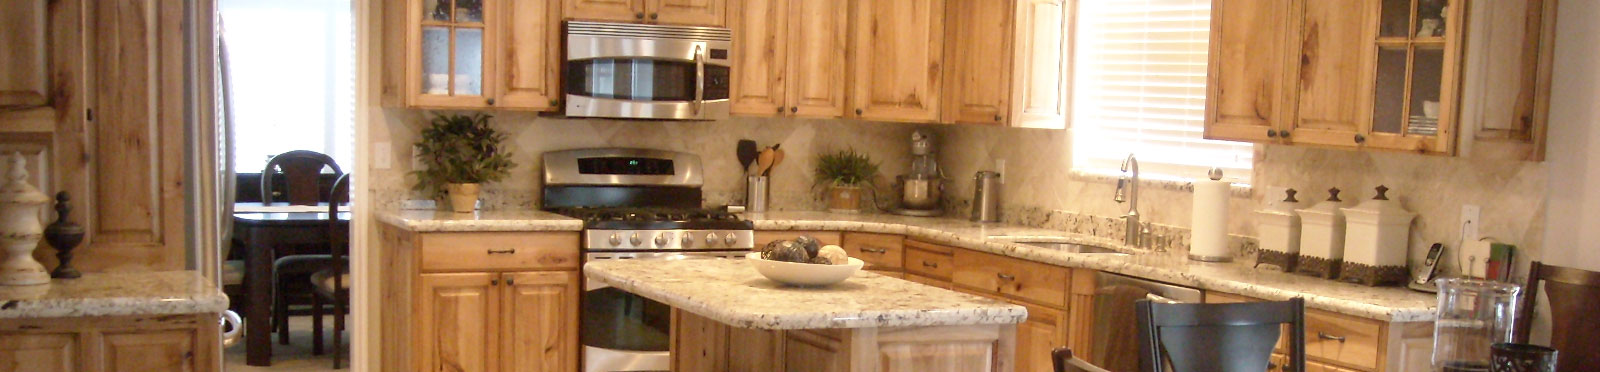 Kitchen And Bath Remodeling Omaha Ne